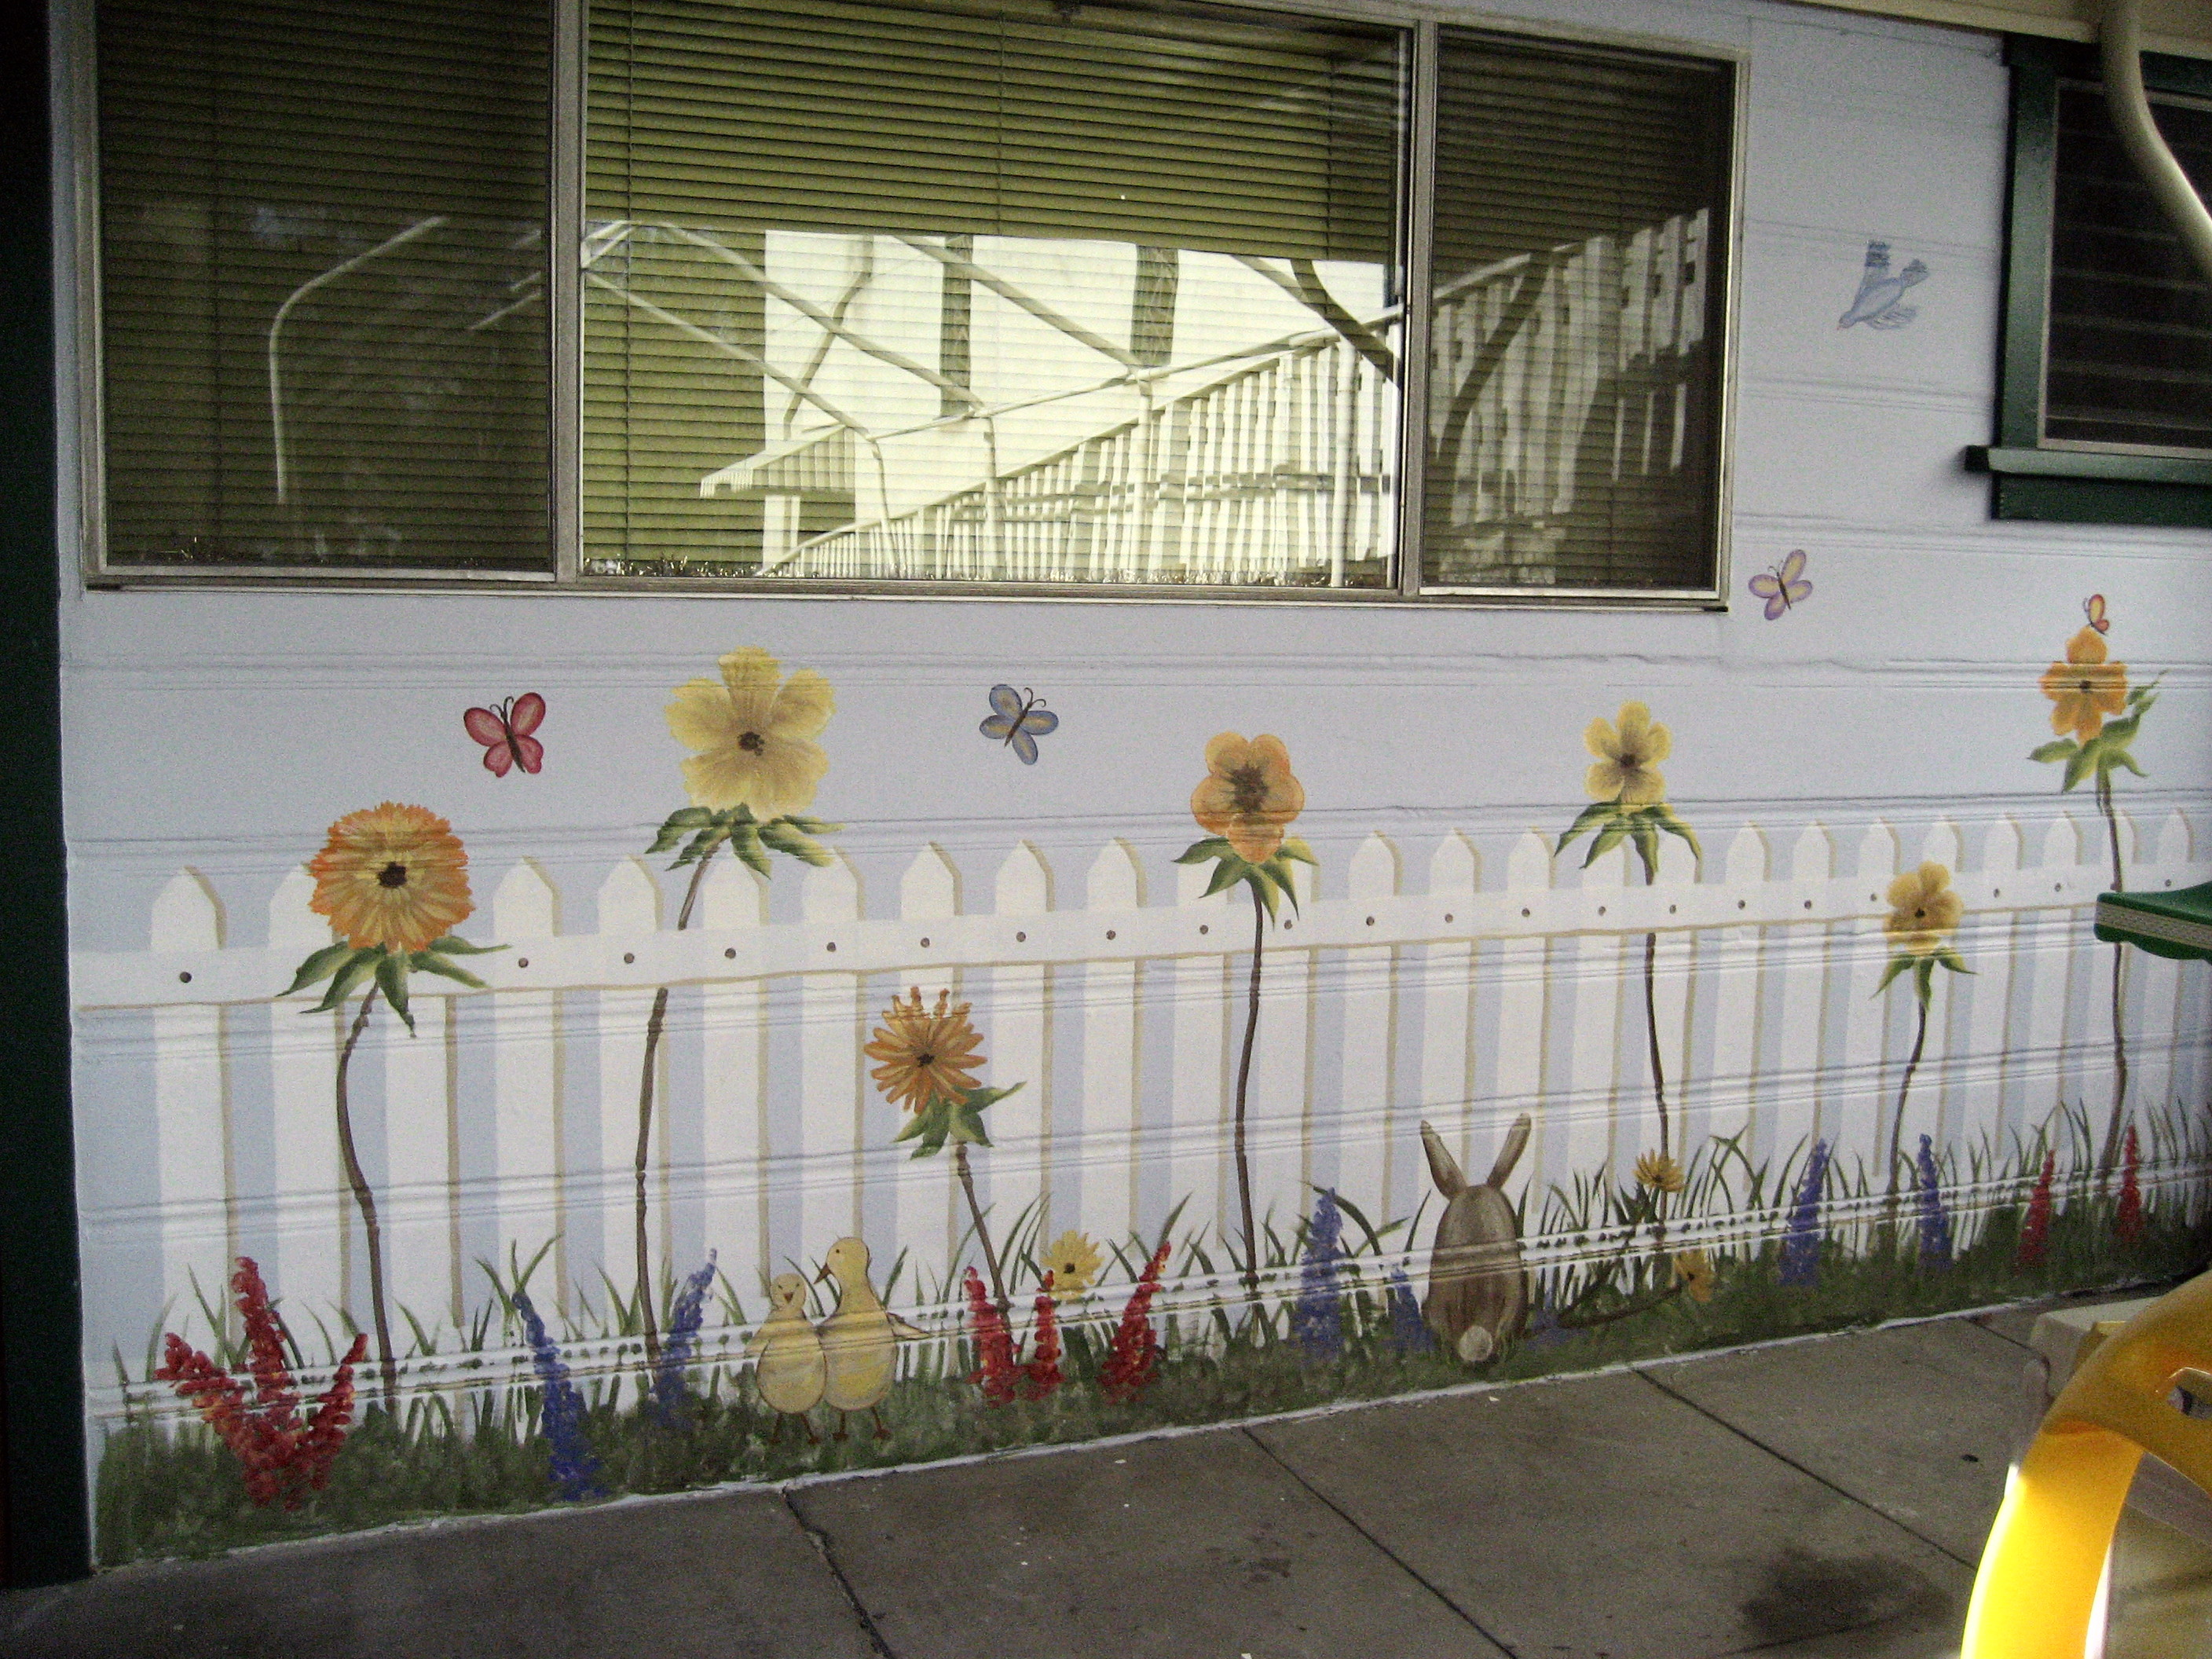 Outdoor floral garden & picket fence